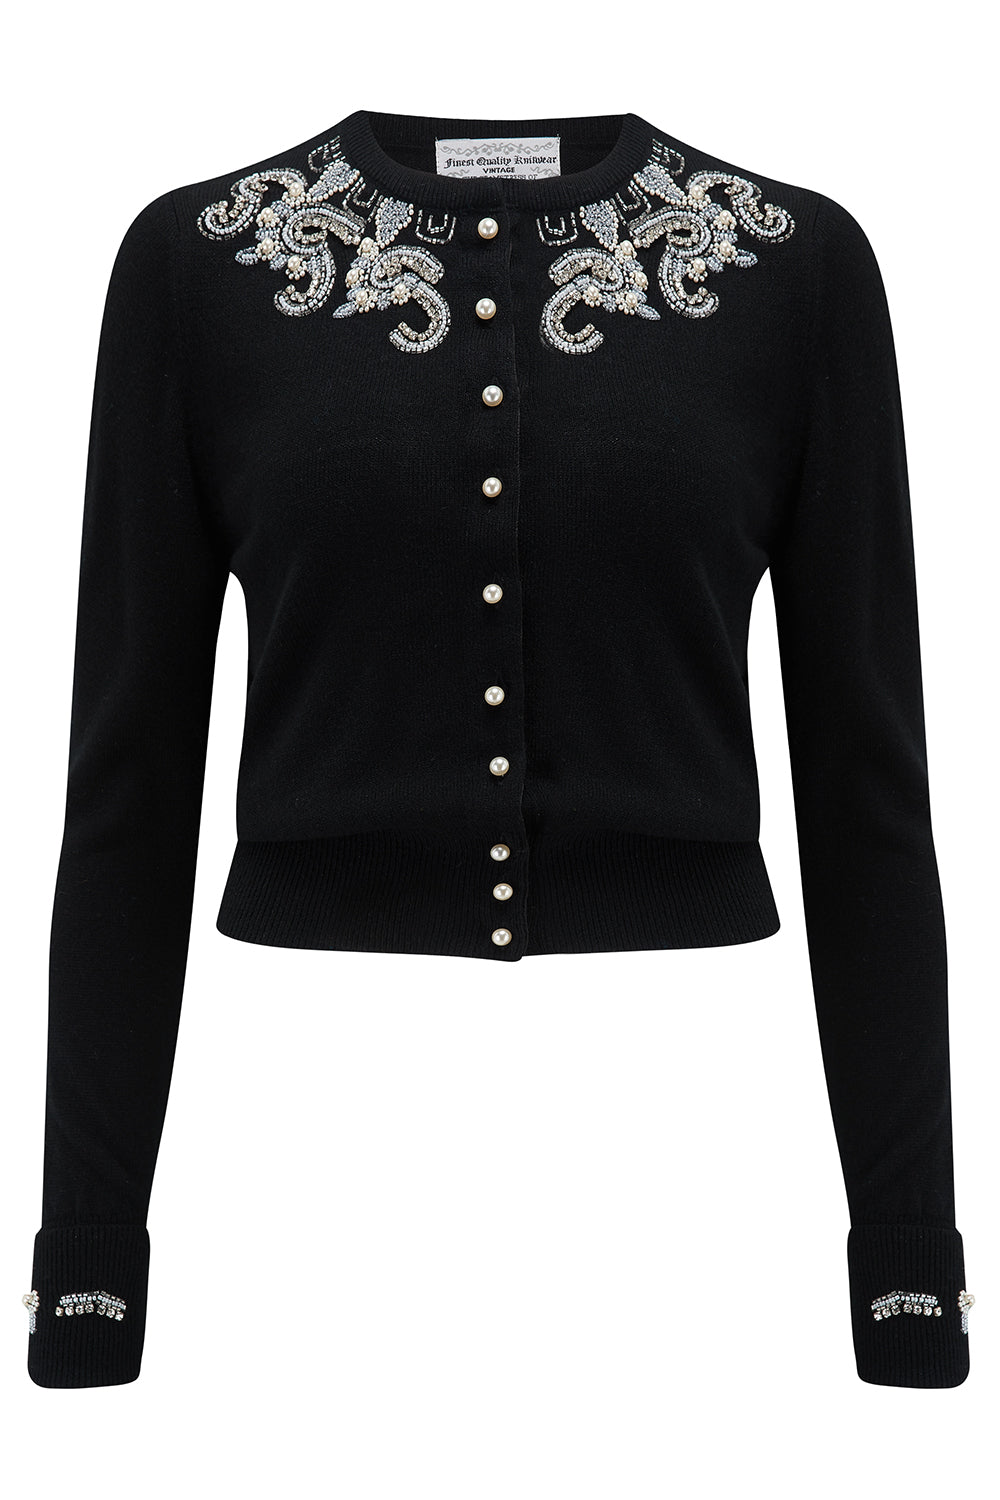 1940s Teenage Fashion: Girls The Pearly Queen Beaded Cardigan in Black Stunning 1940s Vintage Style £69.00 AT vintagedancer.com